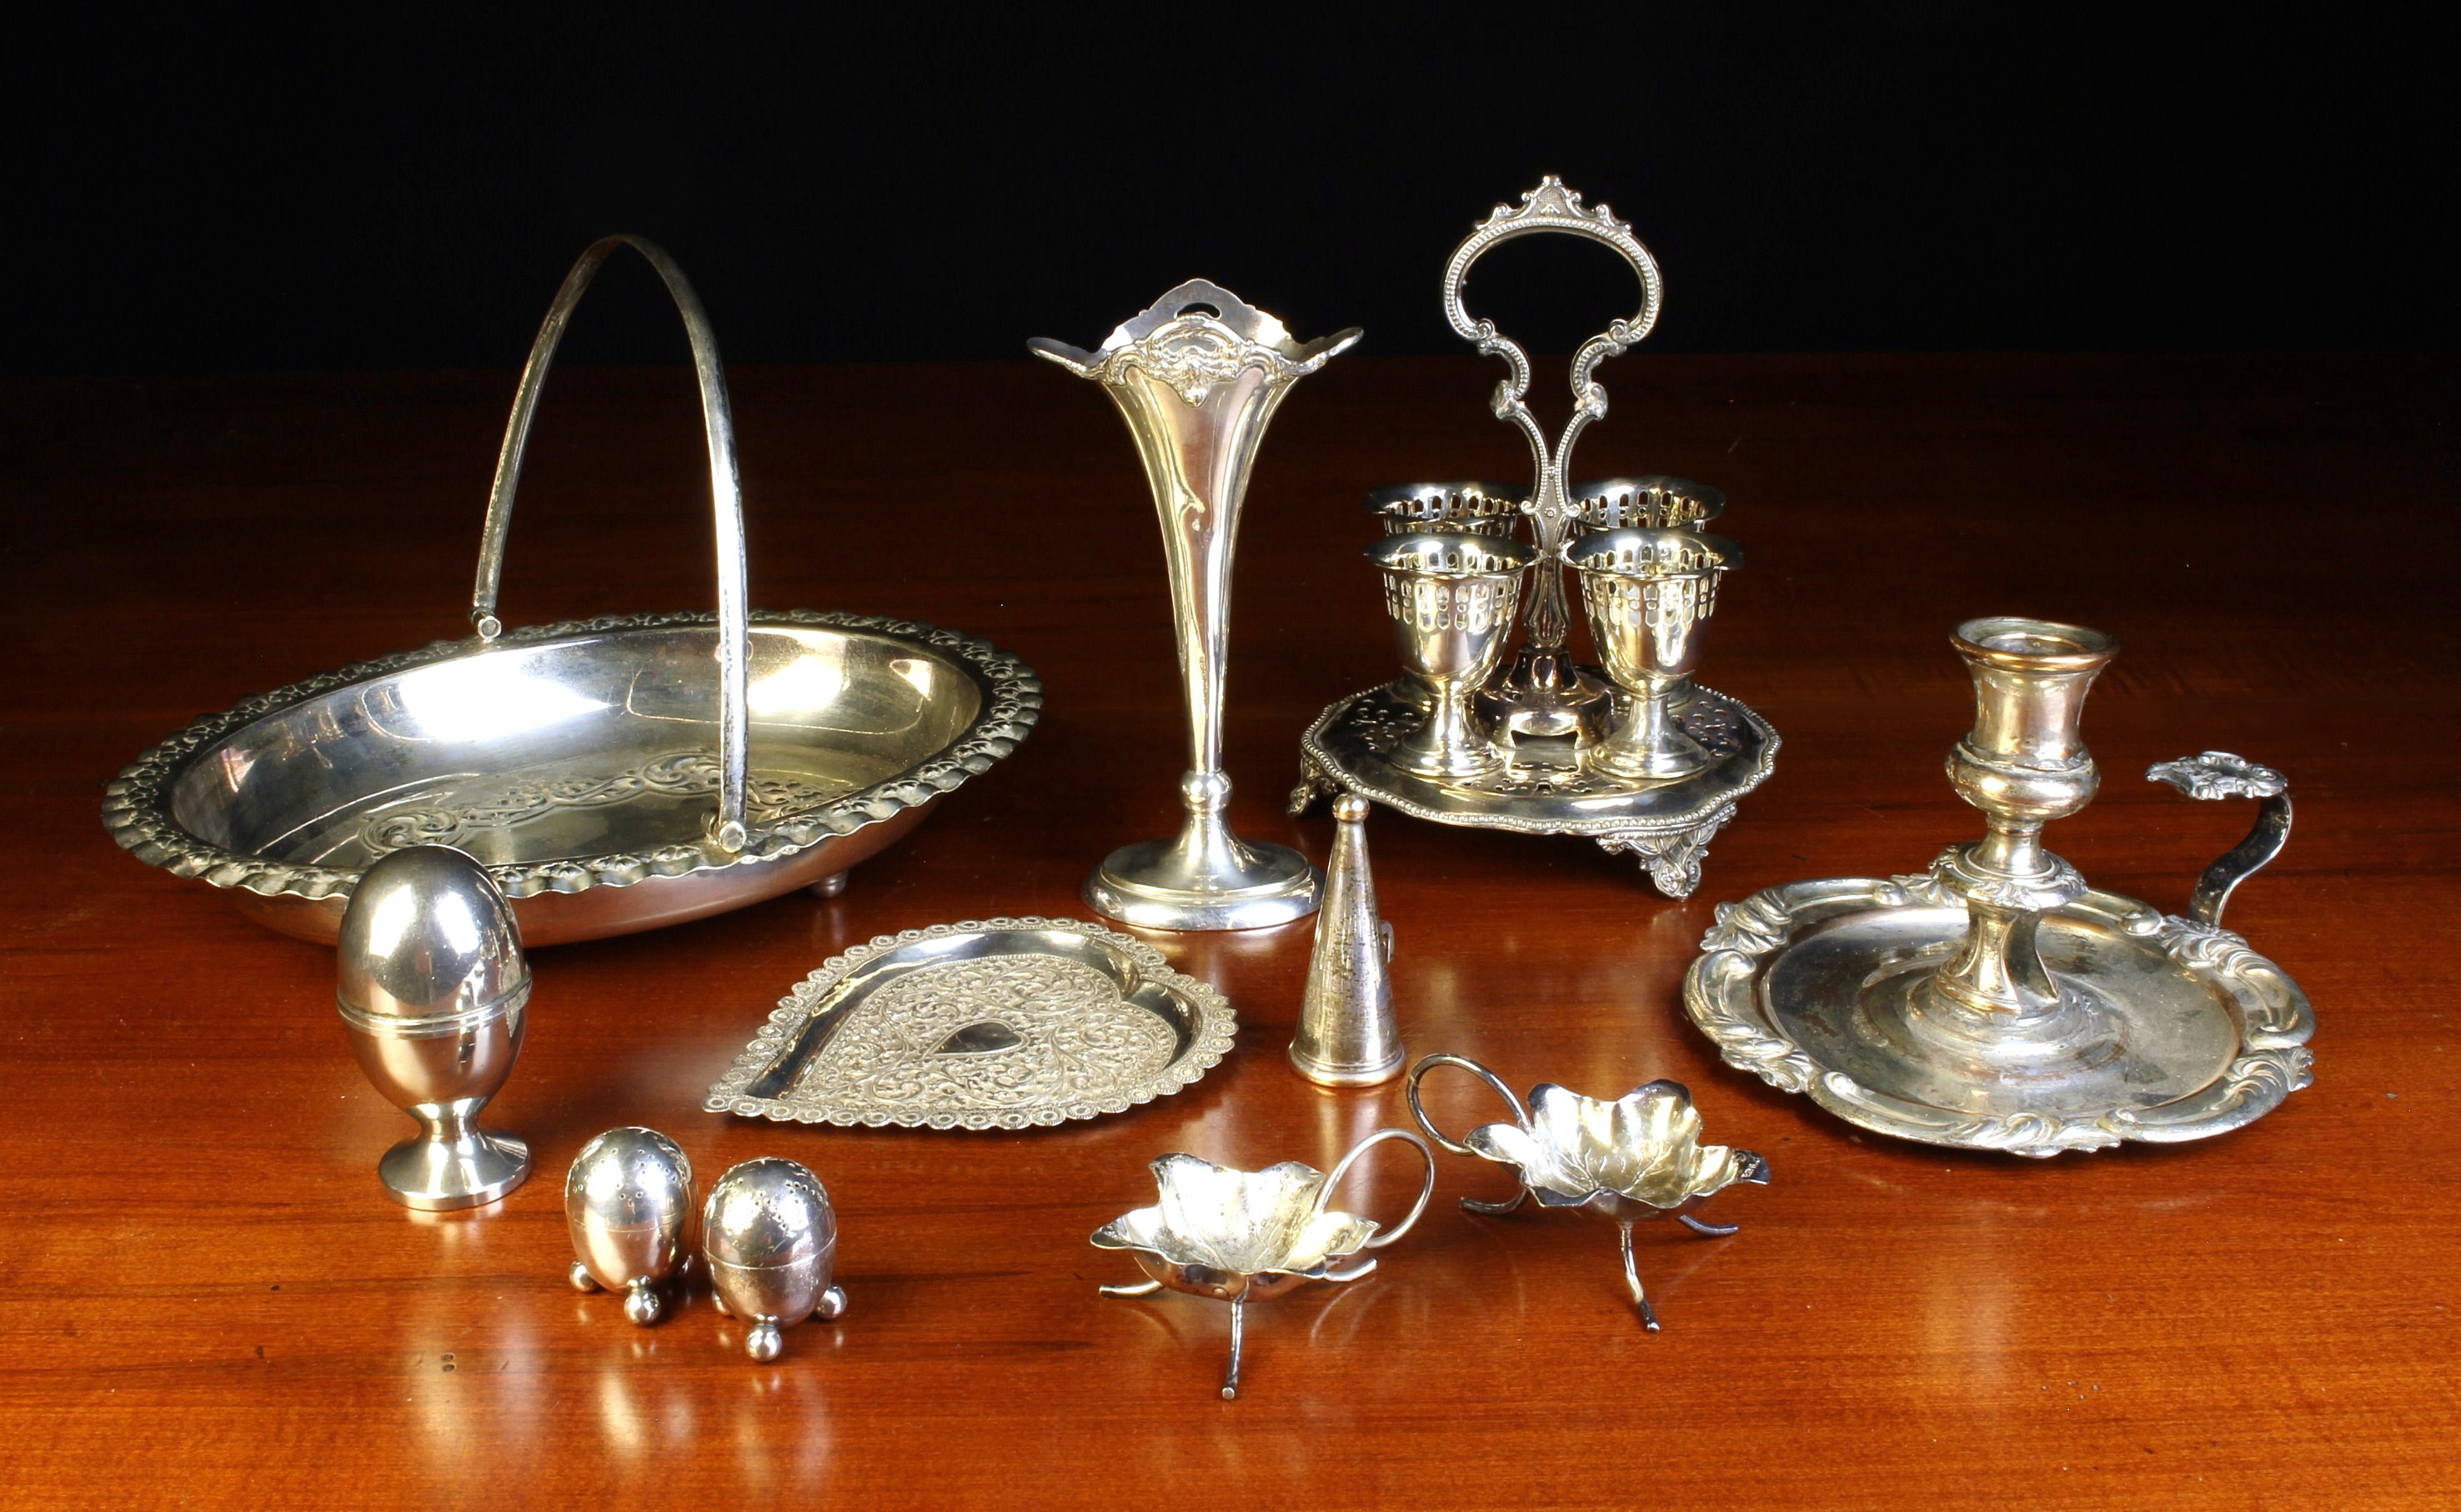 A Group of Decorative Silver Plated Wares: A Pretty Edwardian Eggcup Cruet with four pierced